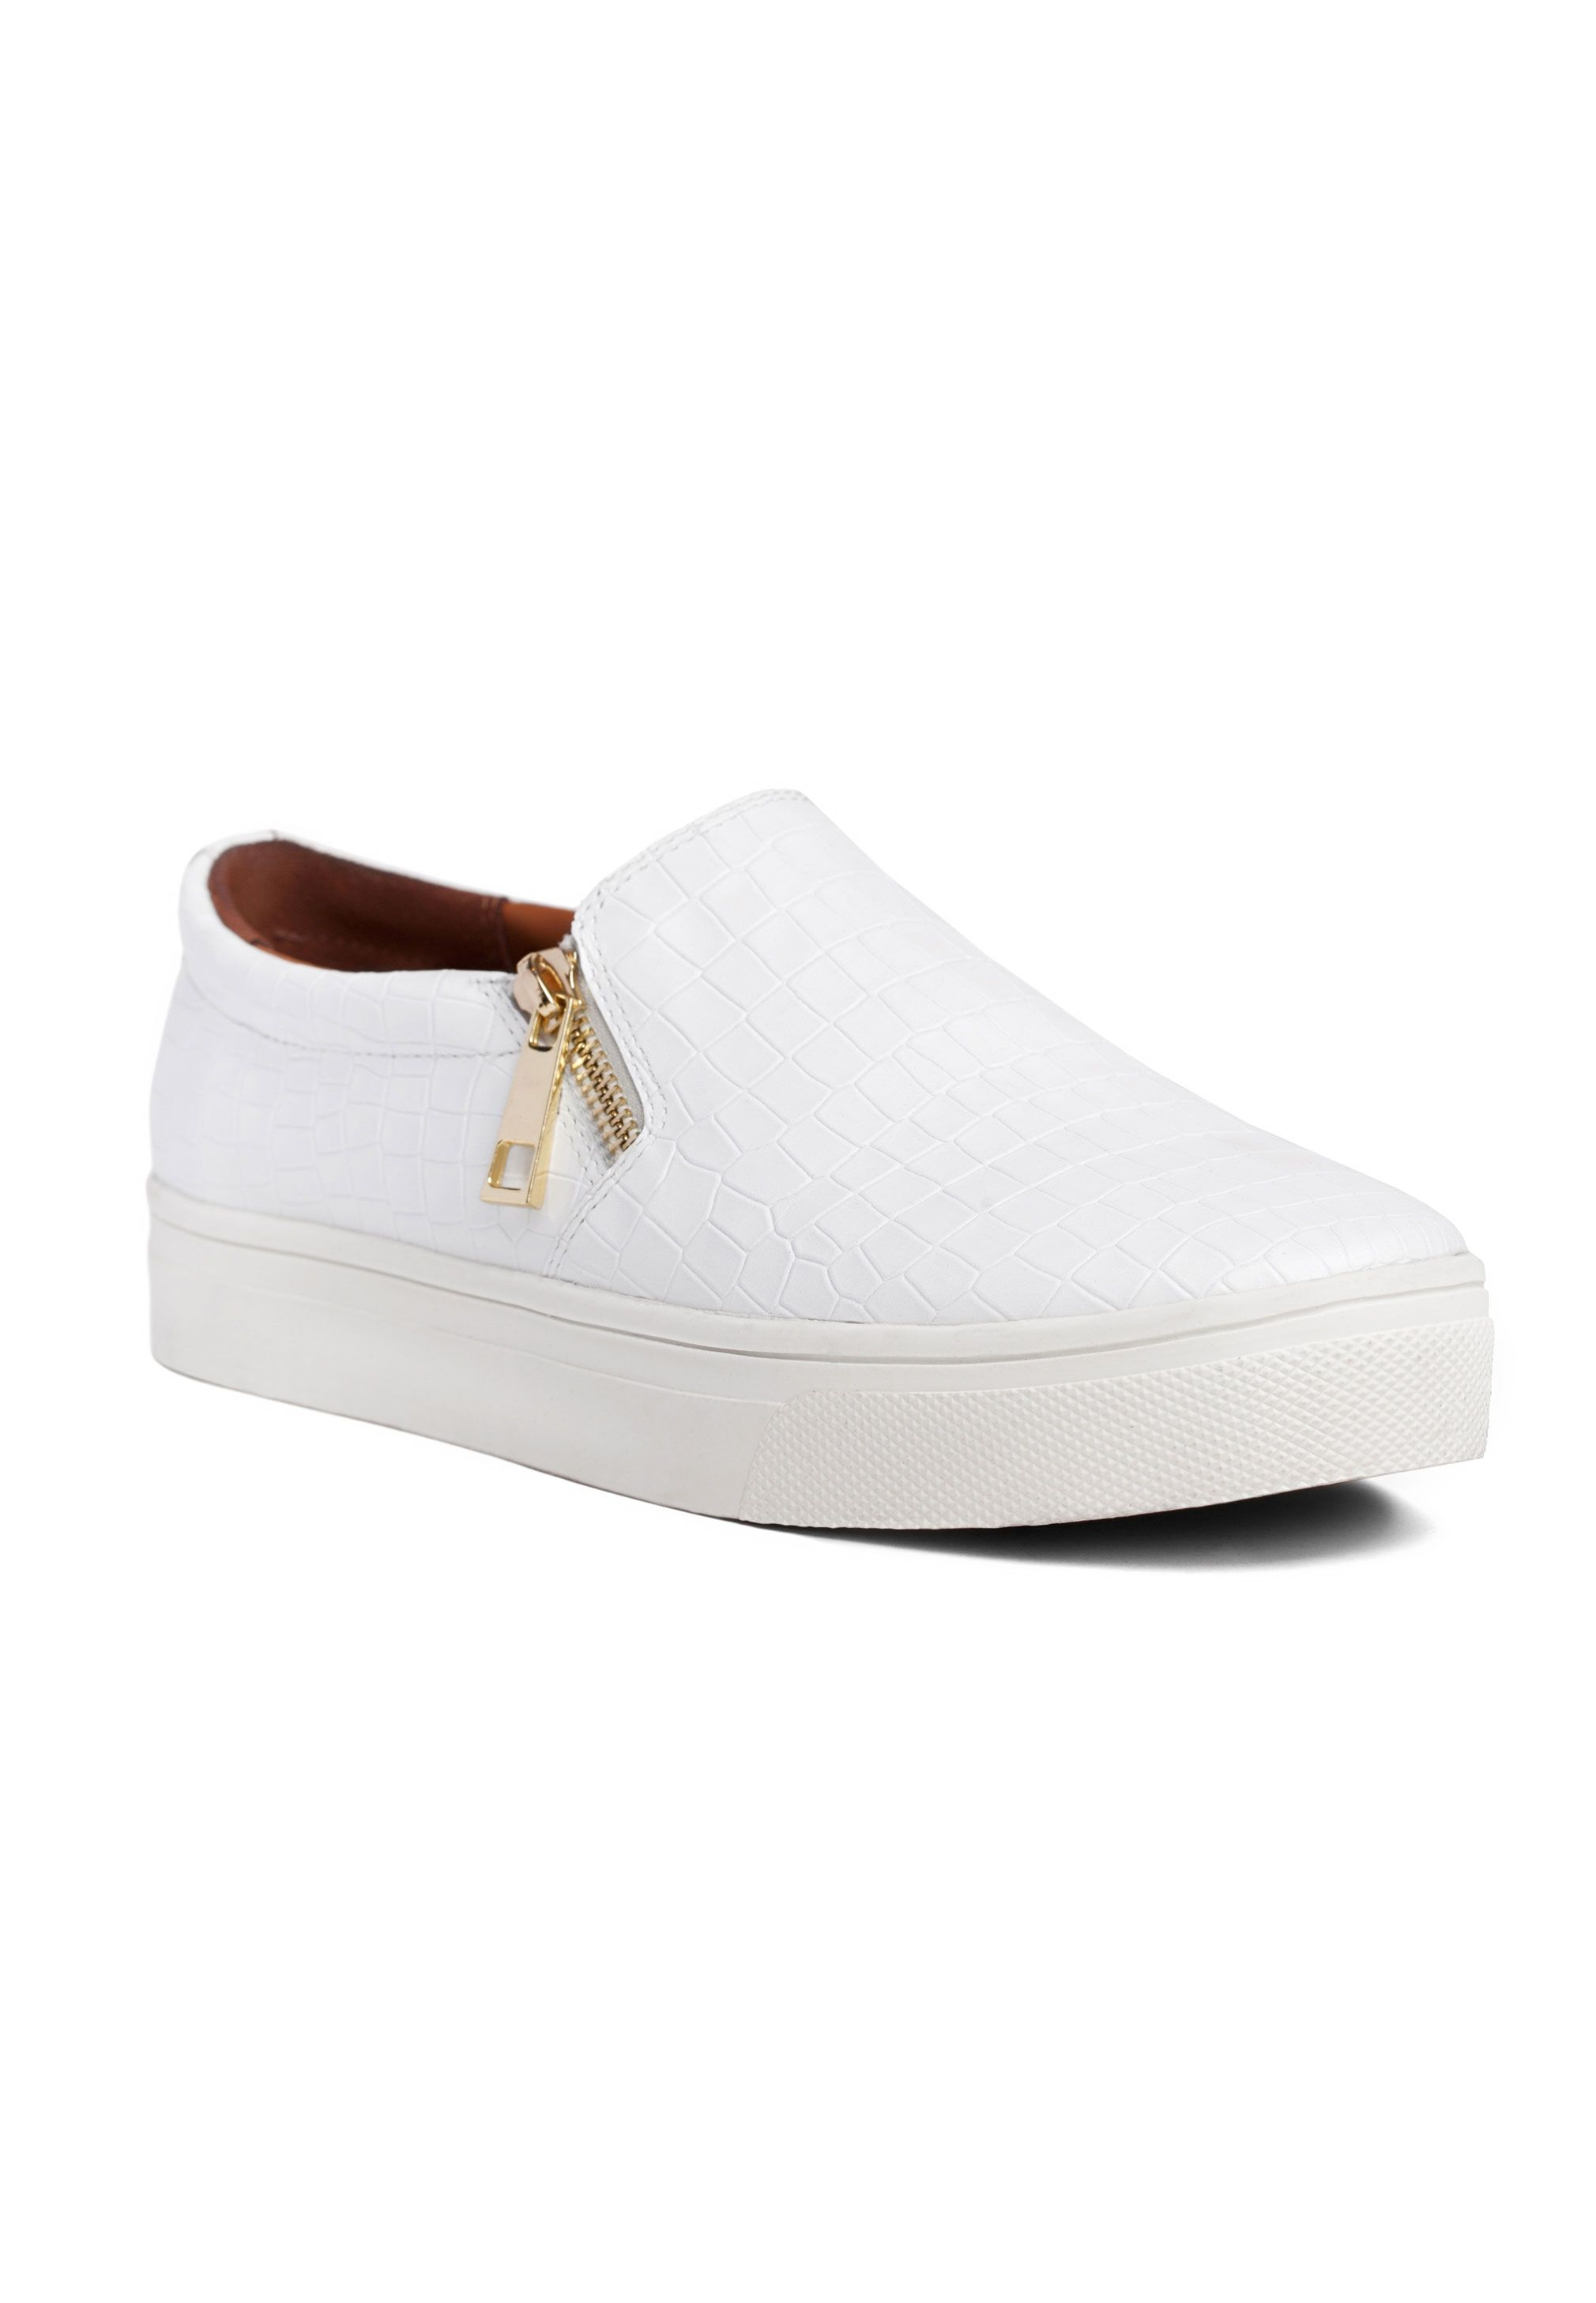 GLIDE SHOES WHITE Shoes, Vans classic slip on sneaker